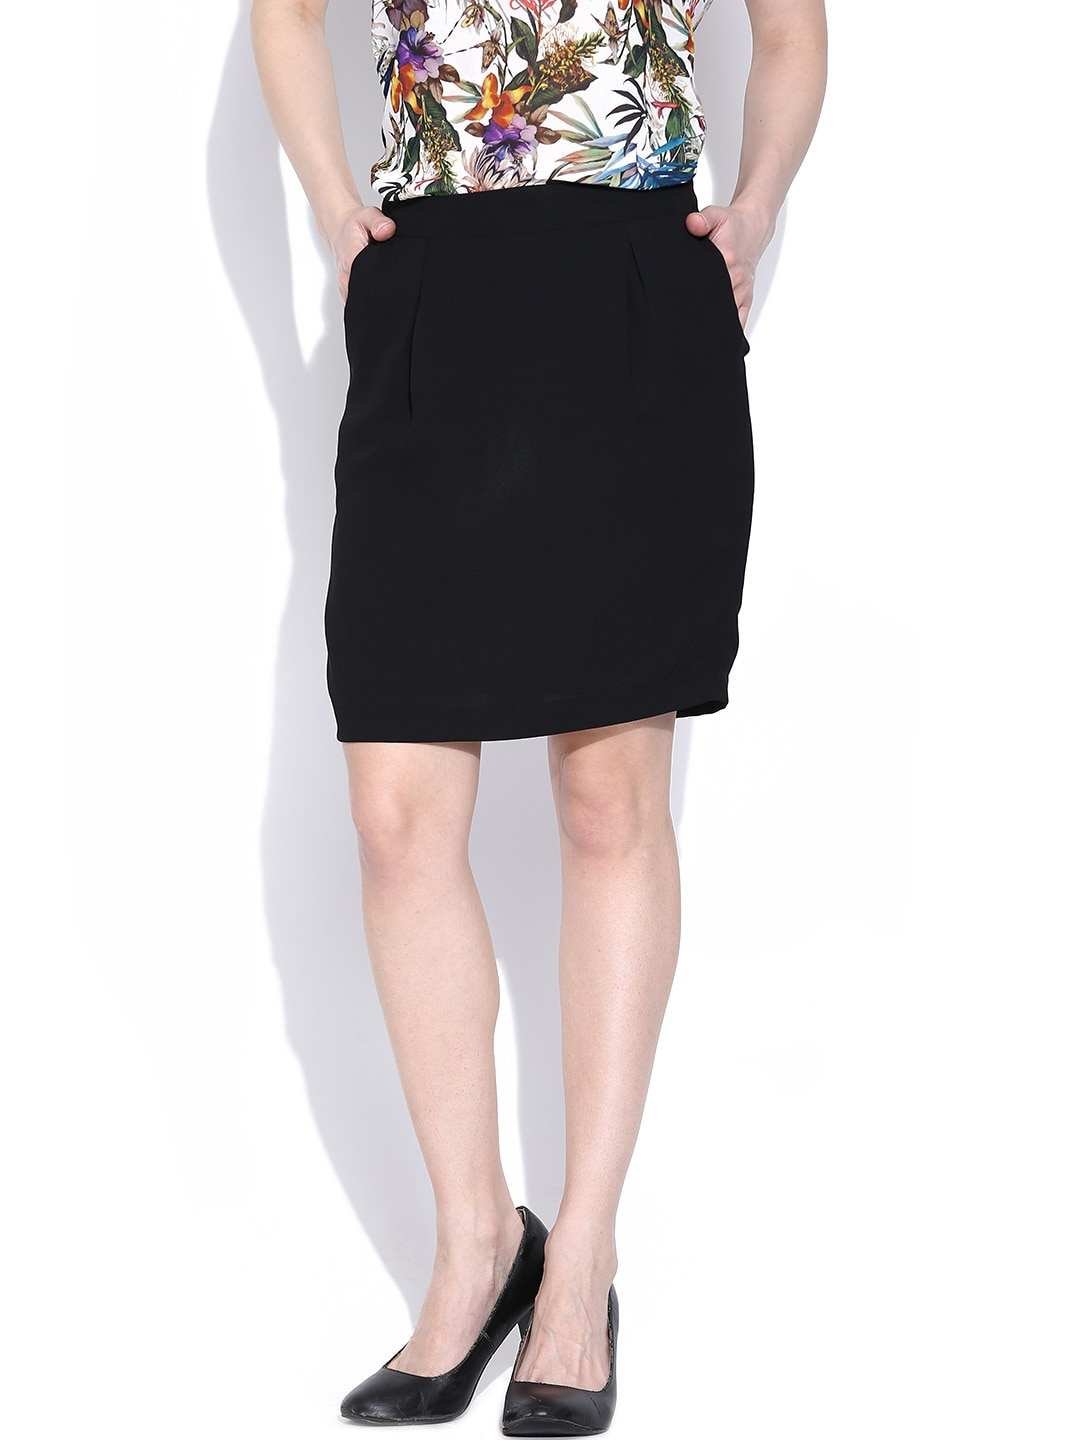 Van Heusen Woman Black Pencil Skirt